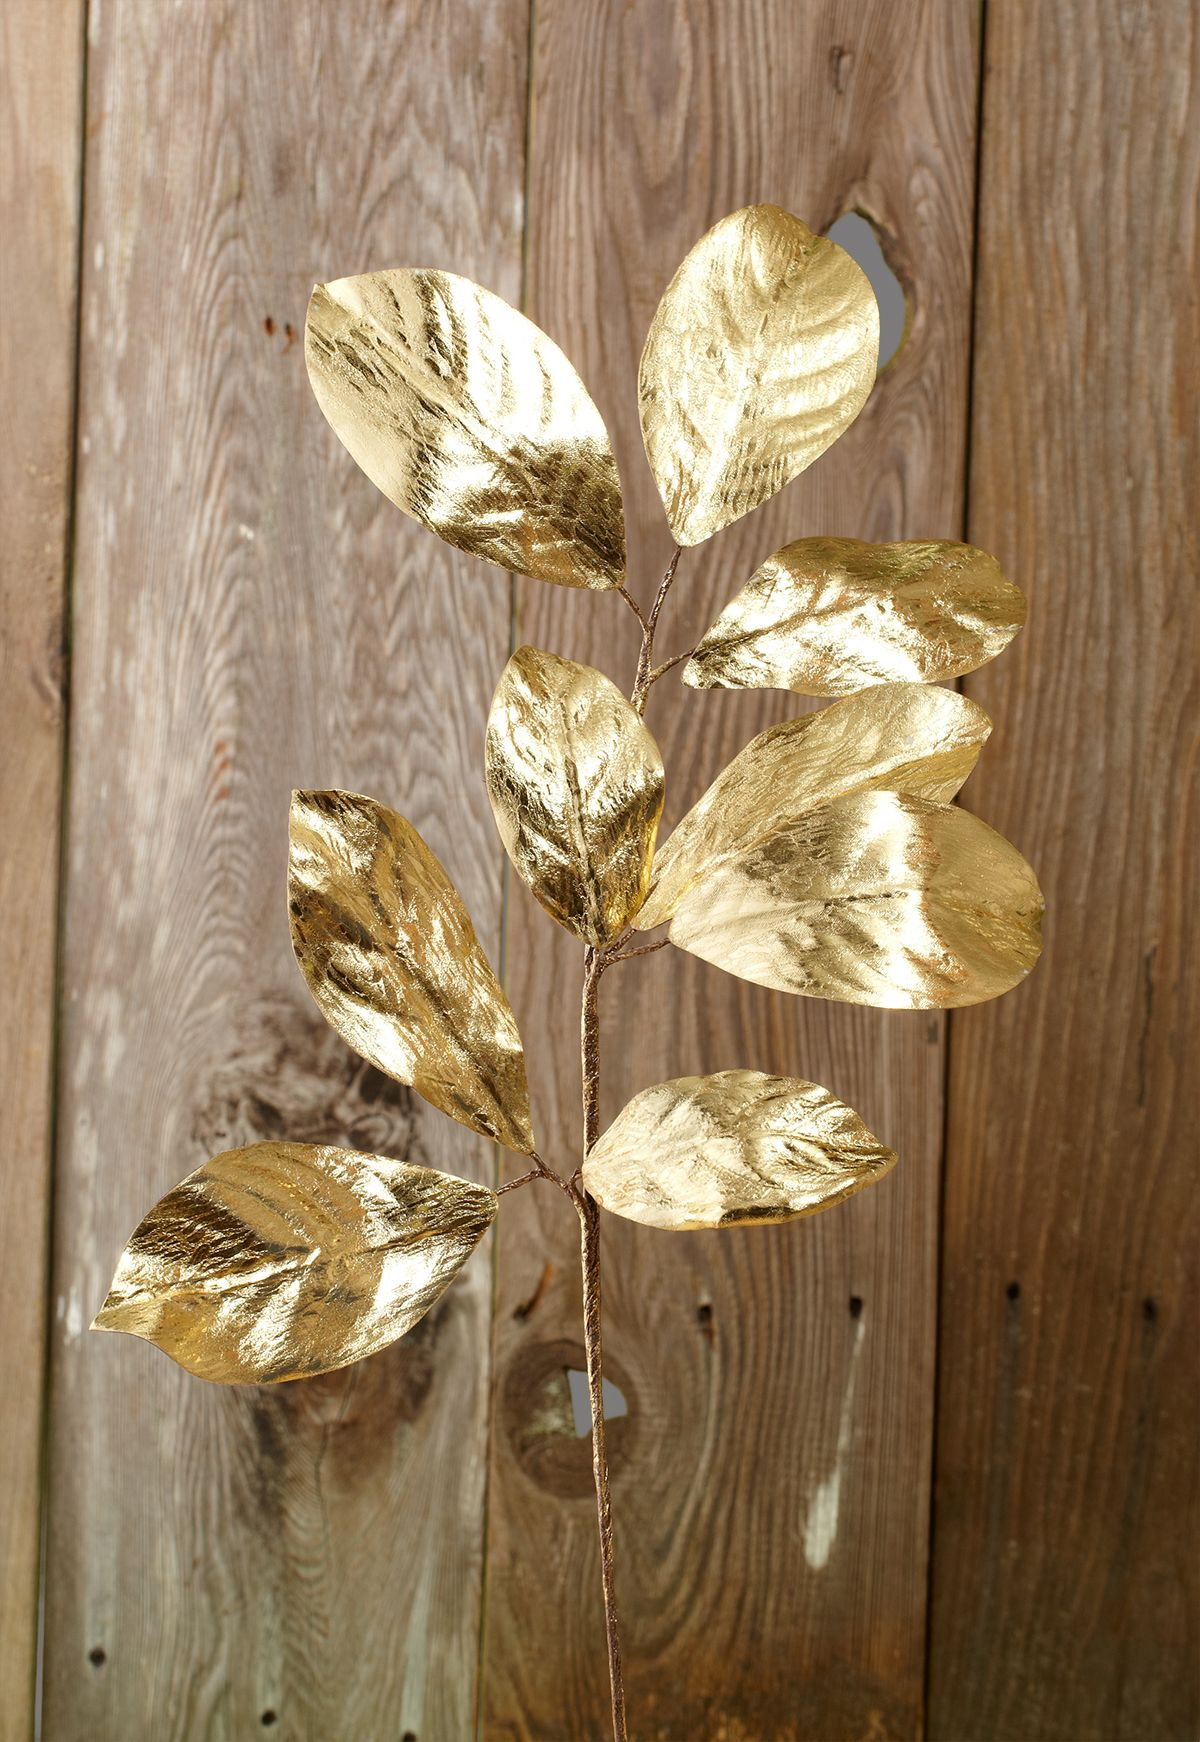 Magnolia Leaf Spray Gold You Can Spray Paint Your Own